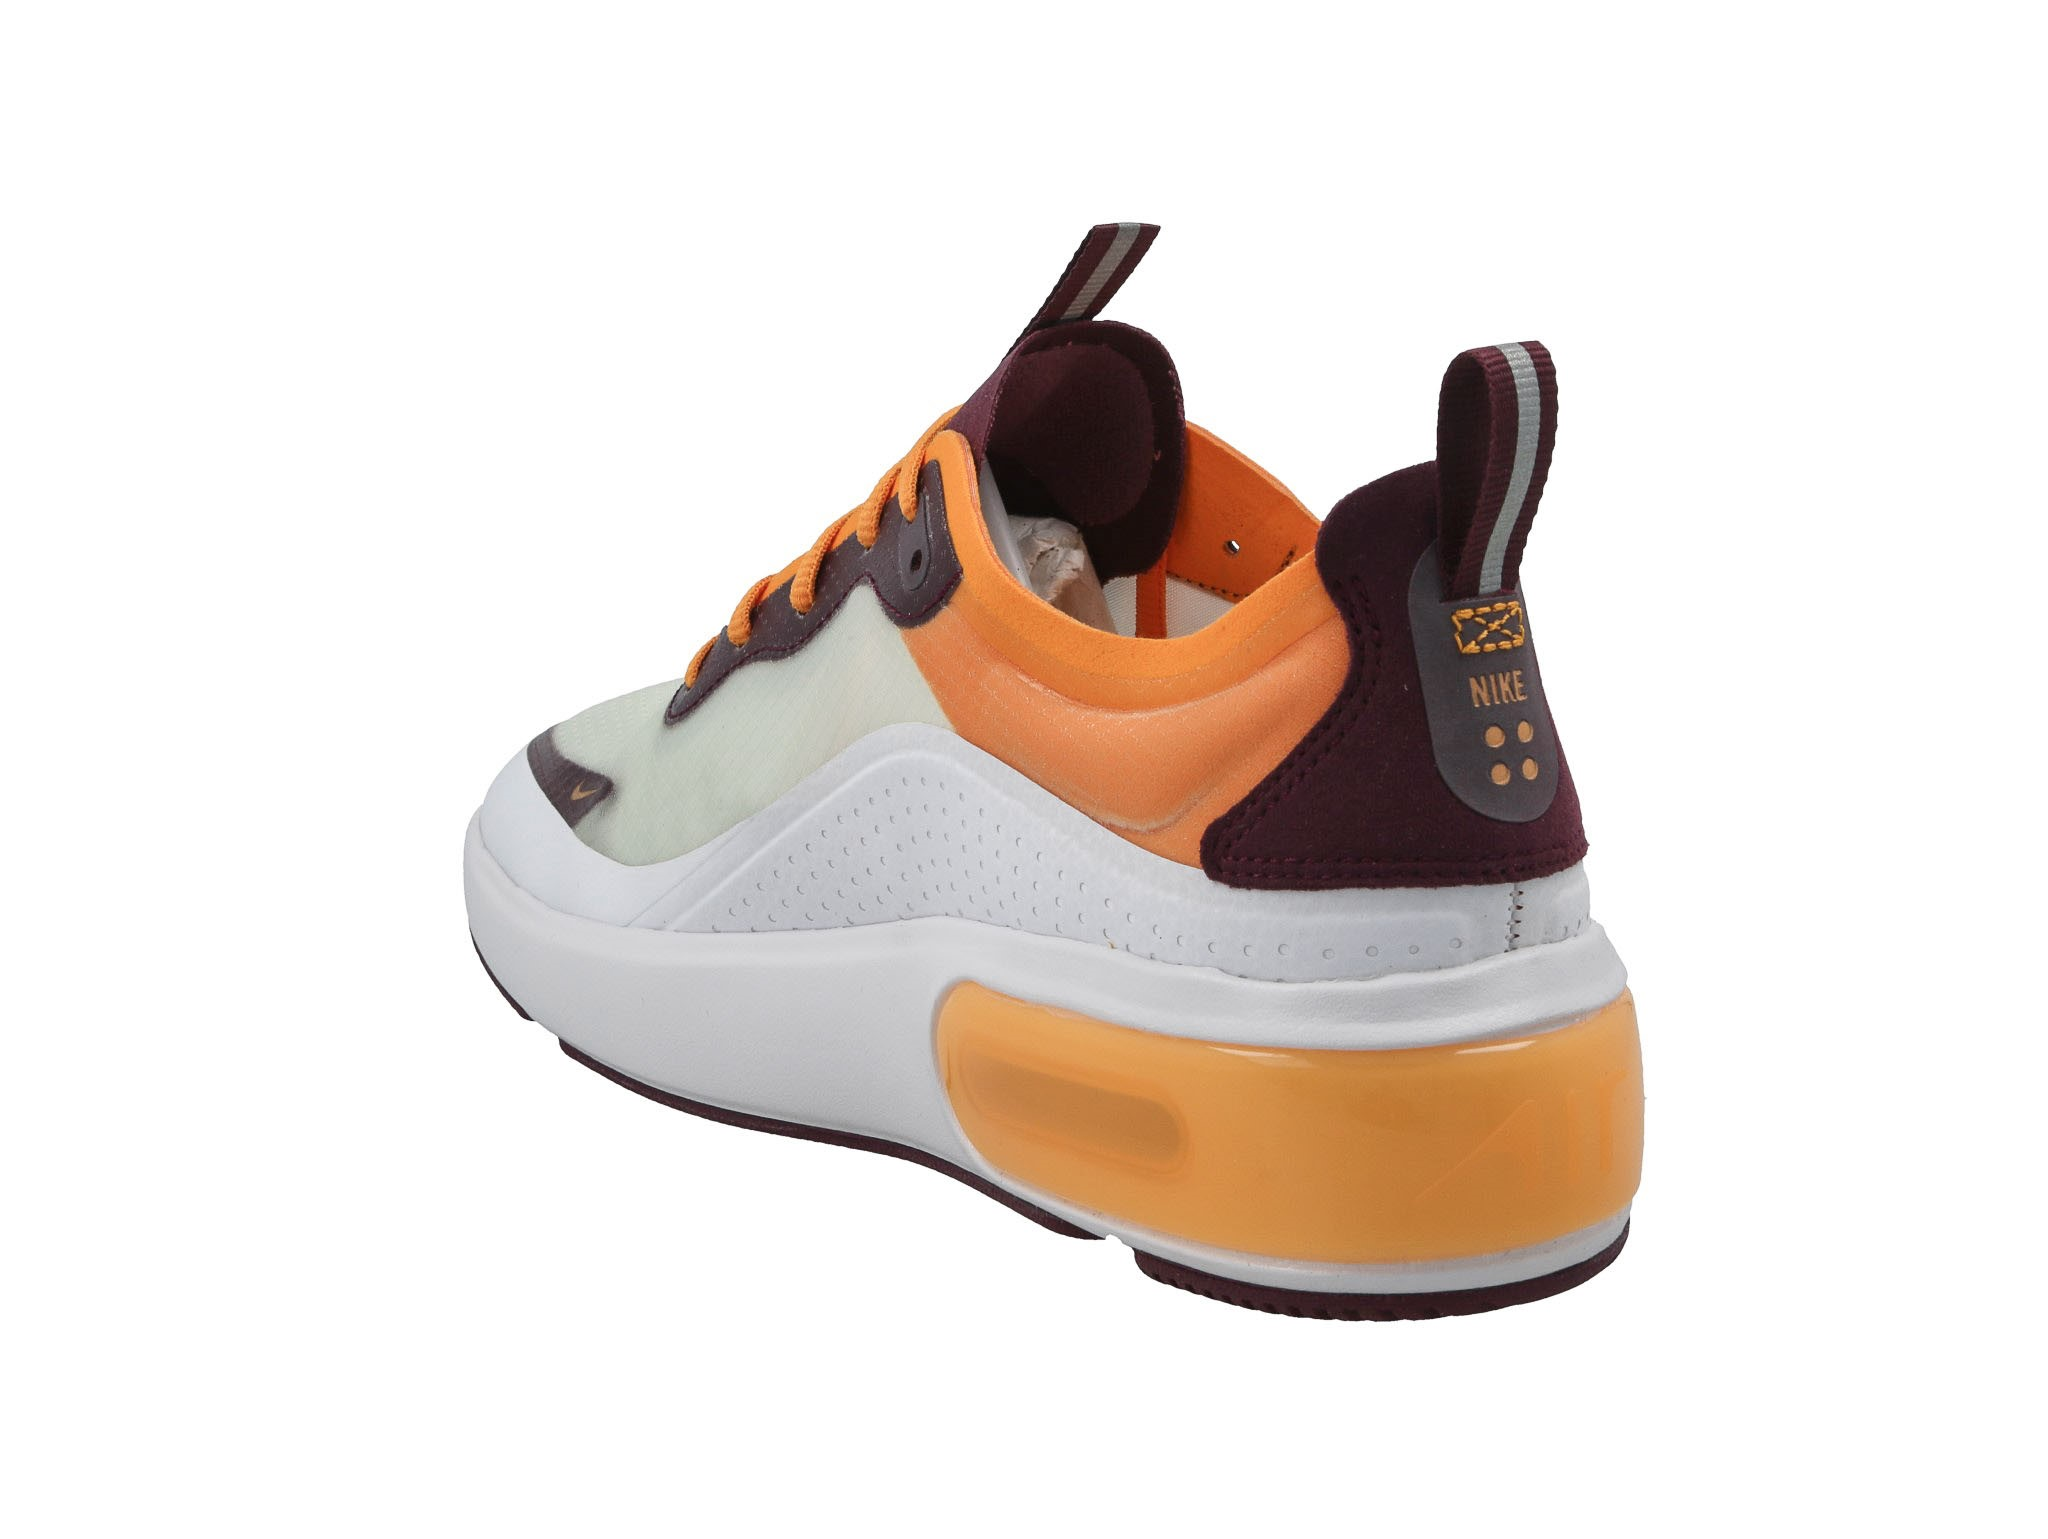 Cipő NIKE - Air Max Dia Se AR7410 103 White/Bordeaux/Orange Peel - Sneakers - Félcipő - Női